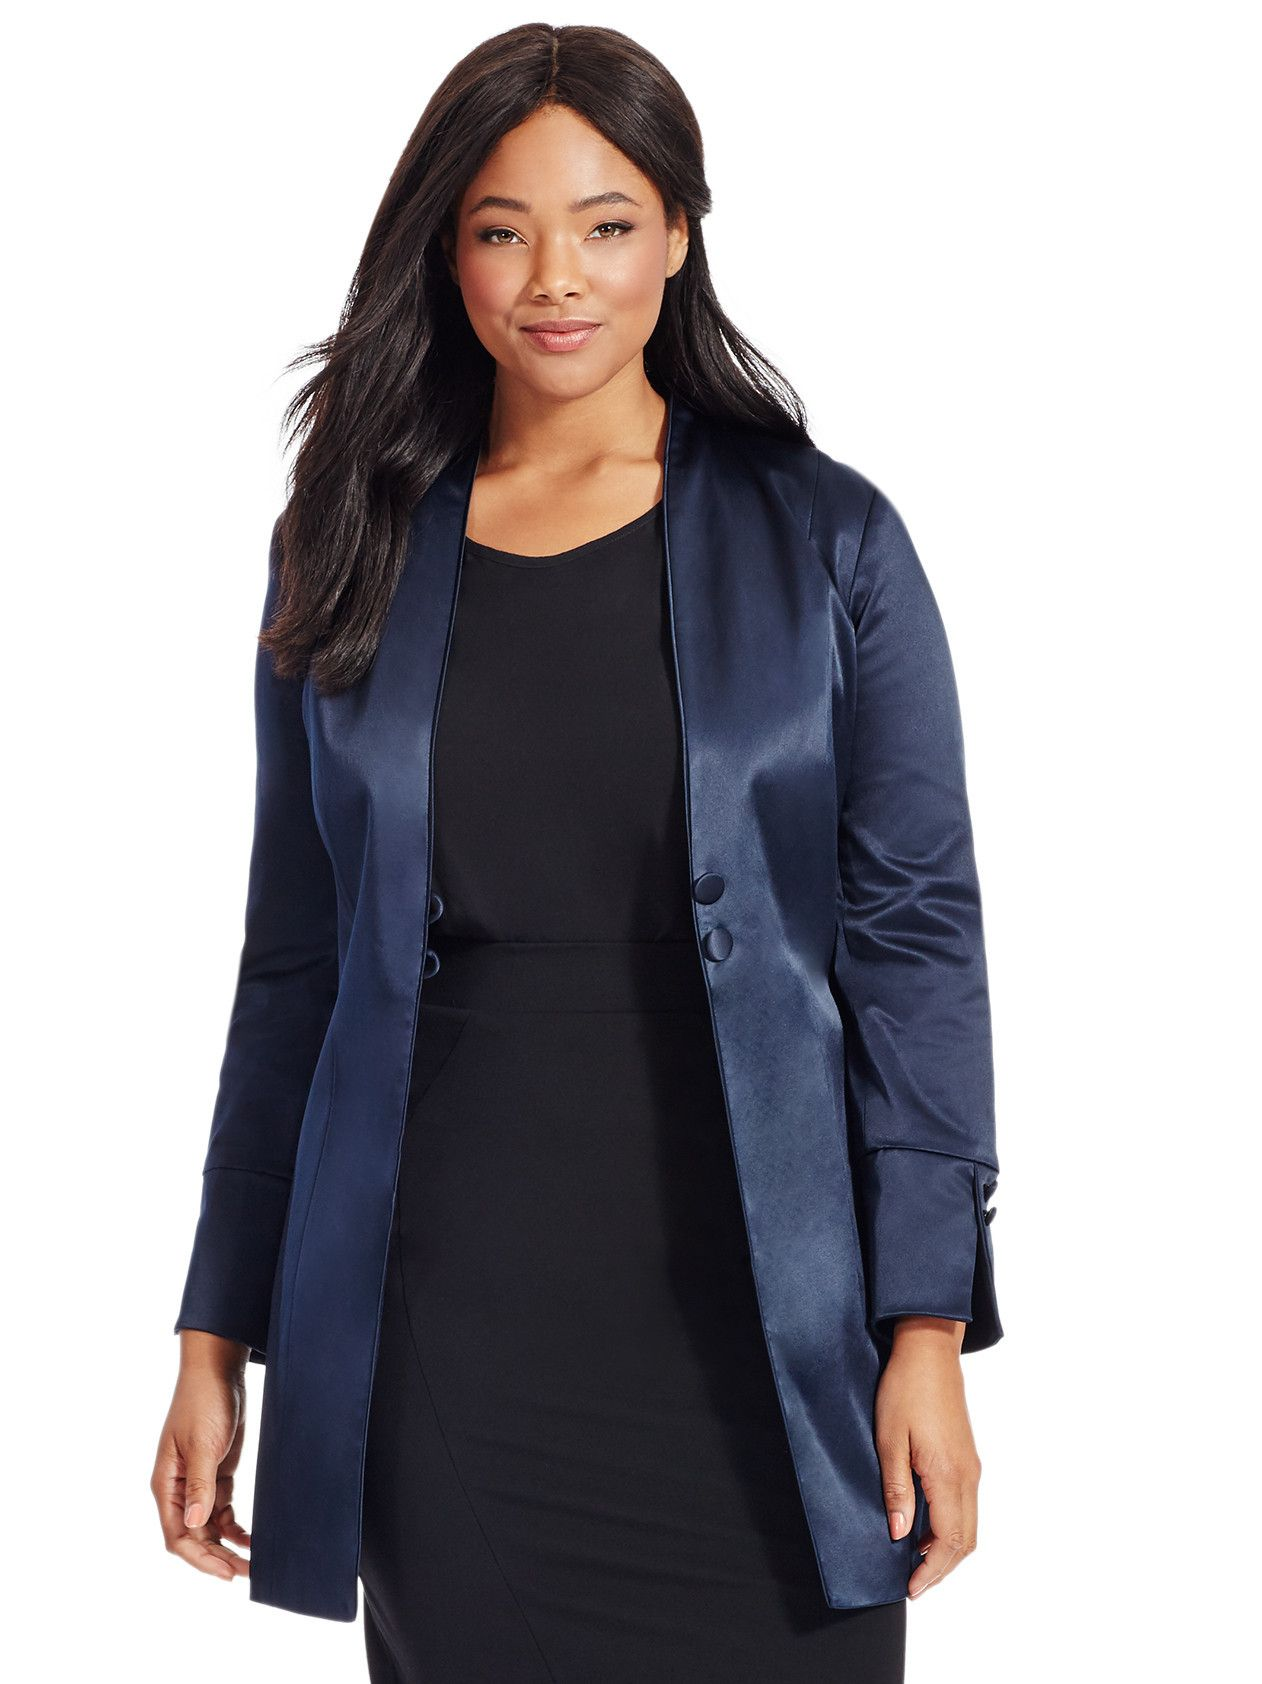 Midnight Blue Satin Long Jacket by Elvi , Available in sizes 14-24